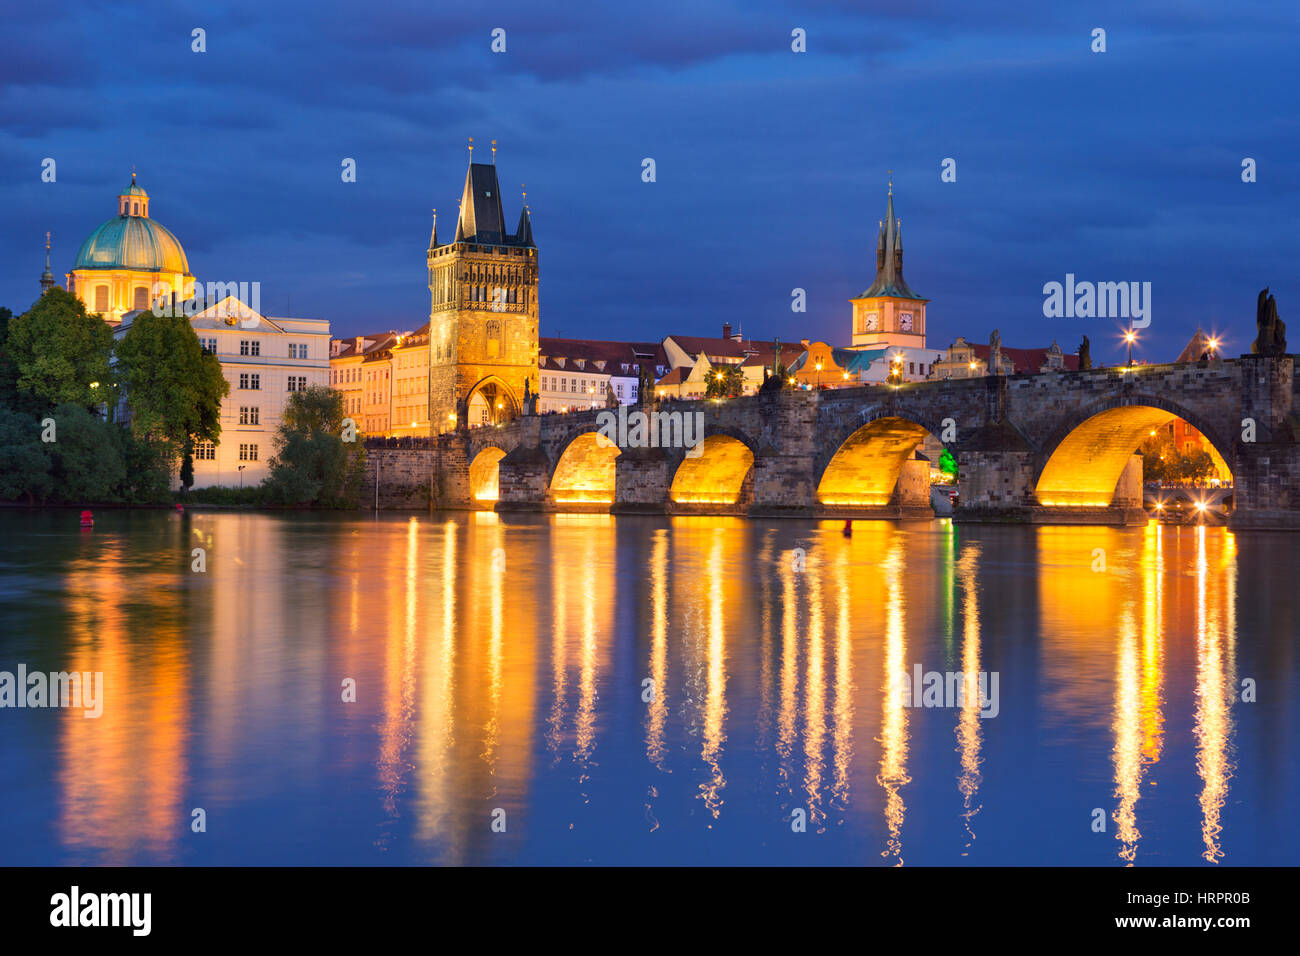 The Charles Bridge over the Vltava River in Prague, Czech Republic, photographed at night. - Stock Image